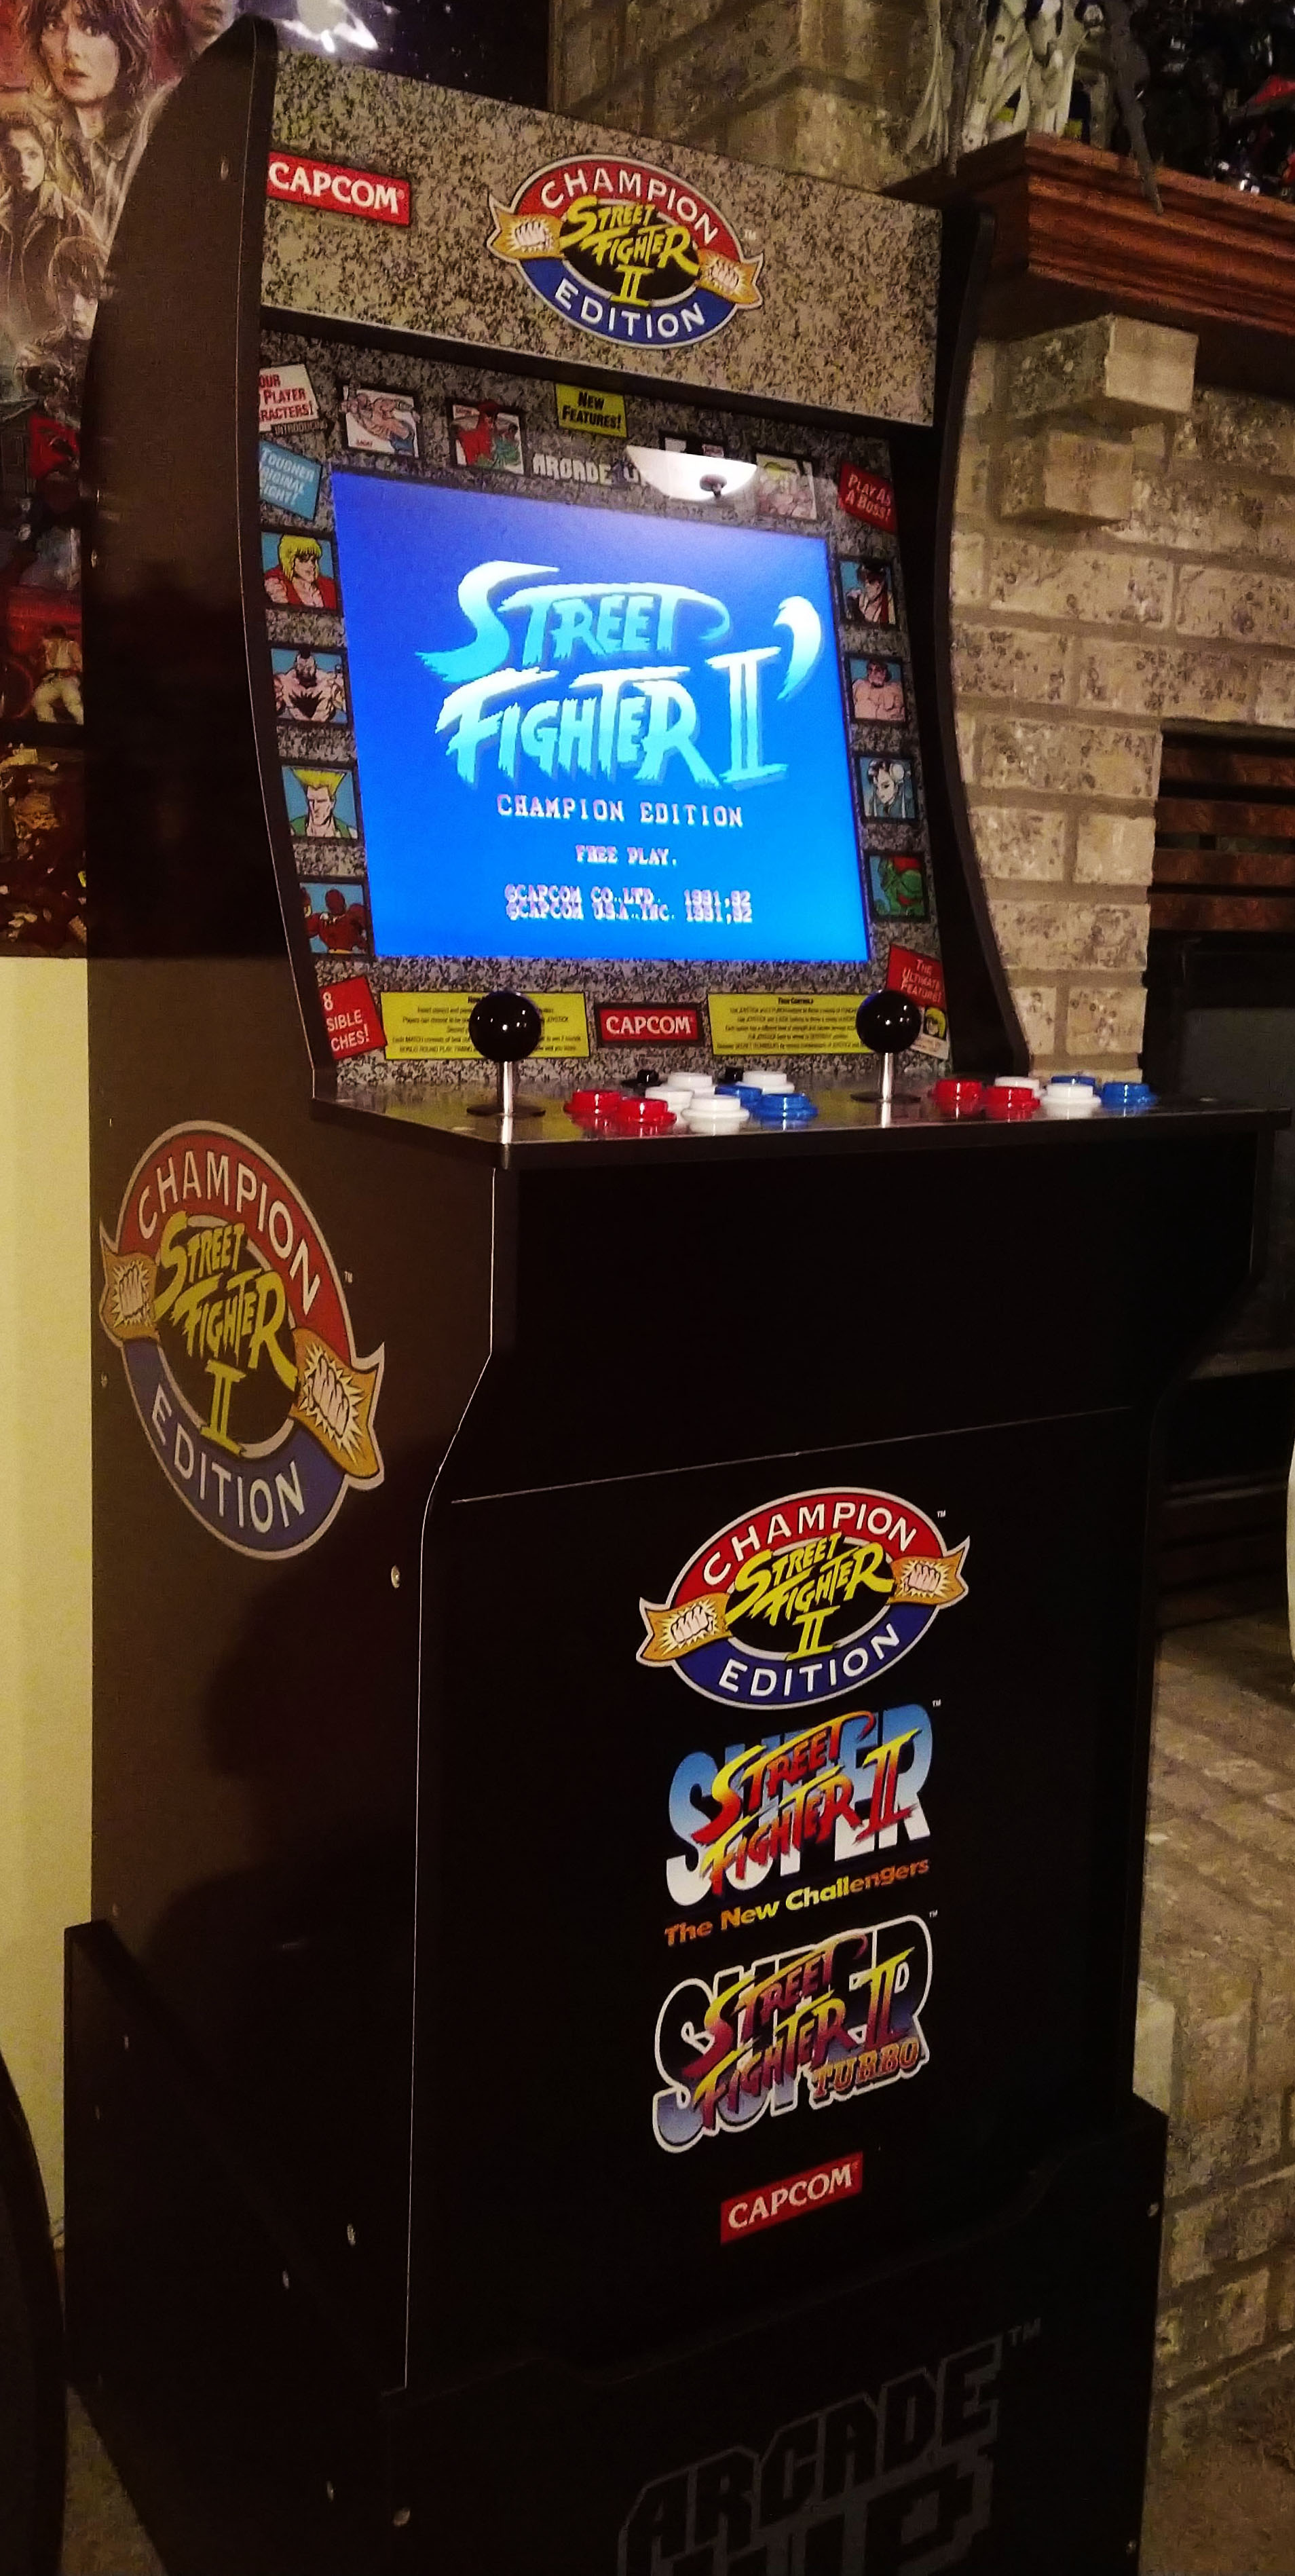 Update: Arcade1Up Street Fighter II Championship Edition and